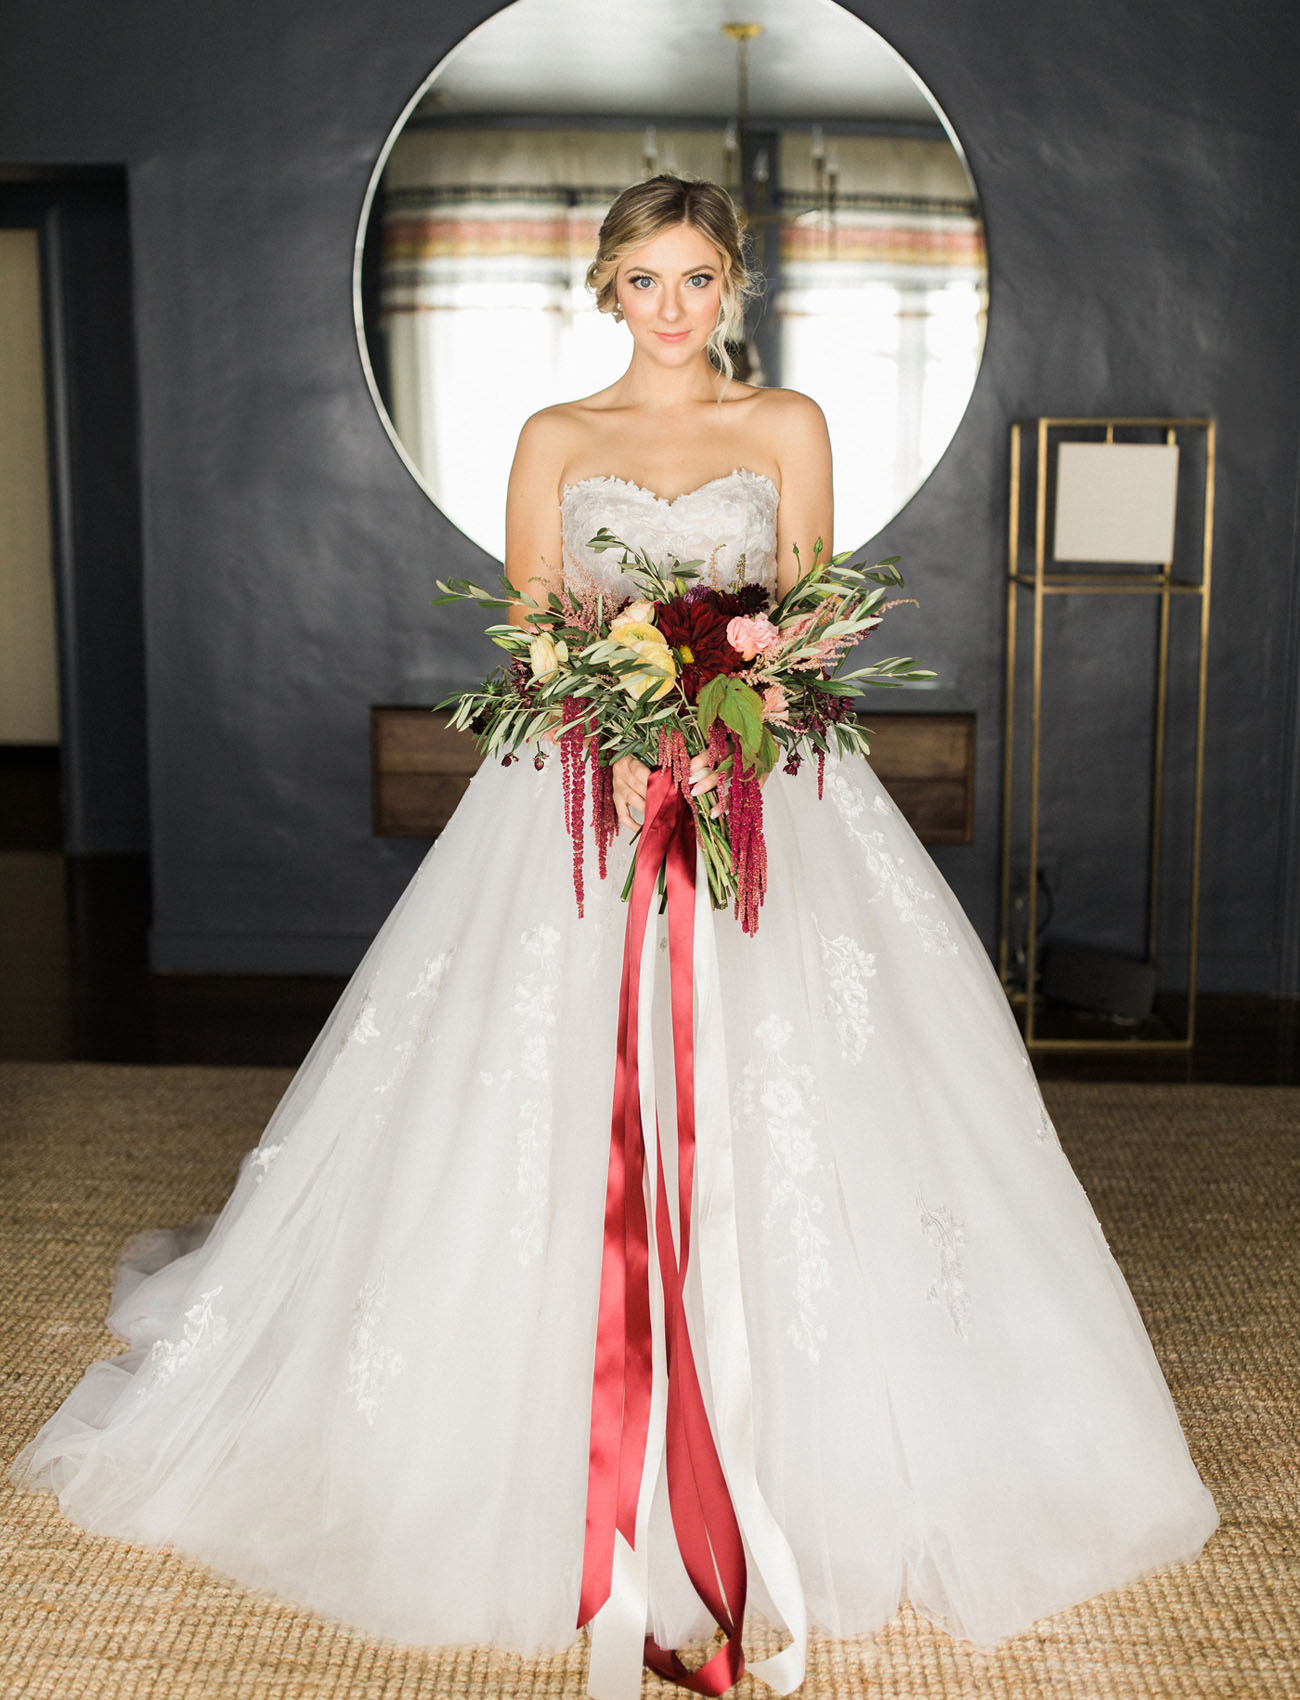 JINZA Couture Bridal wedding dress